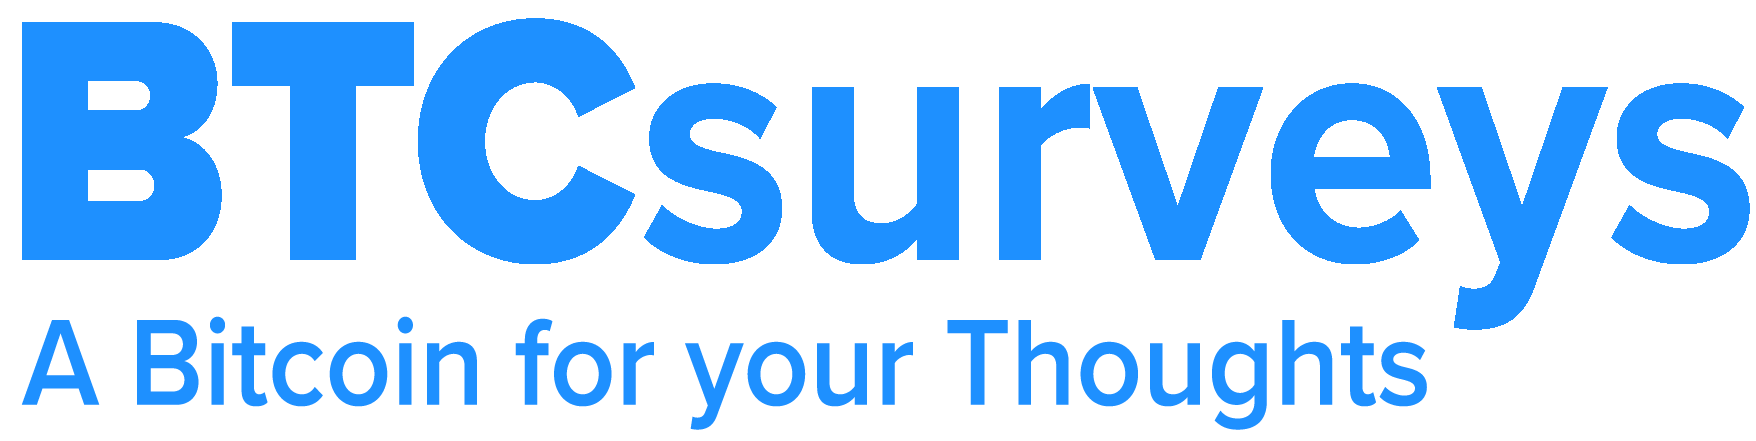 BTCsurveys bitcoin surveys logo